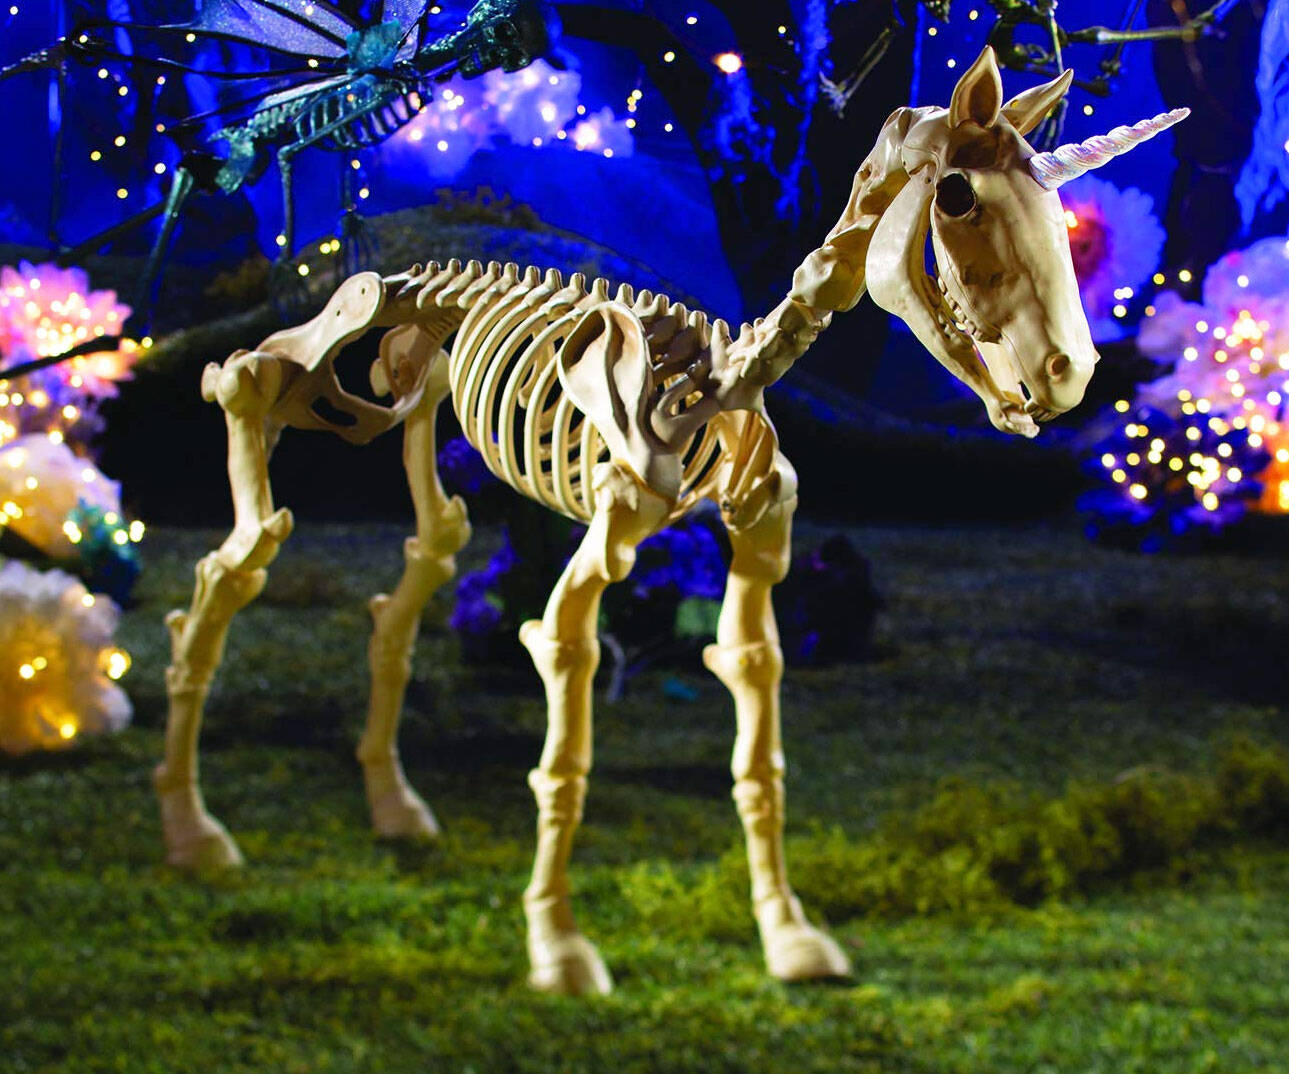 Unicorn Skeleton Lawn Decor